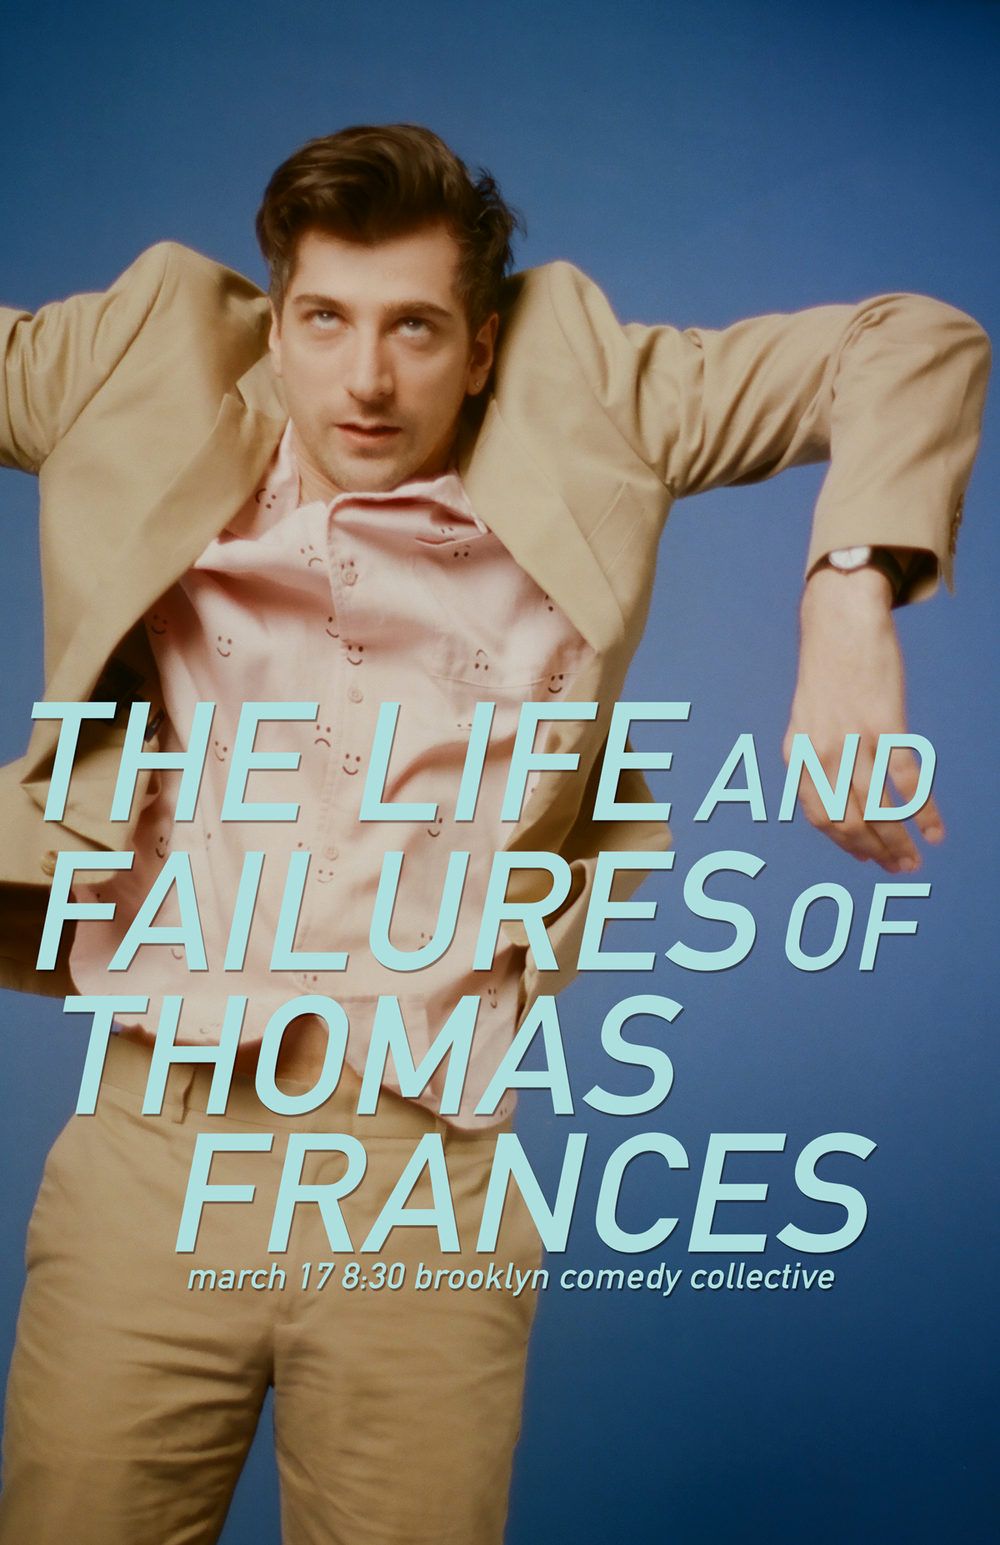 - THE LIFE AND FAILURES OF THOMAS FRANCESThomas Frances is a failure. Just ask his three children. Or his divorce lawyer. Or his clone. Or a ghost. Better yet, discover how much of a failure he is right in front of you. Featuring special guests Adam Bangser, Kelly Cooper, Jolie Darrow, Tim Lamphier, and Ian Lockwood.